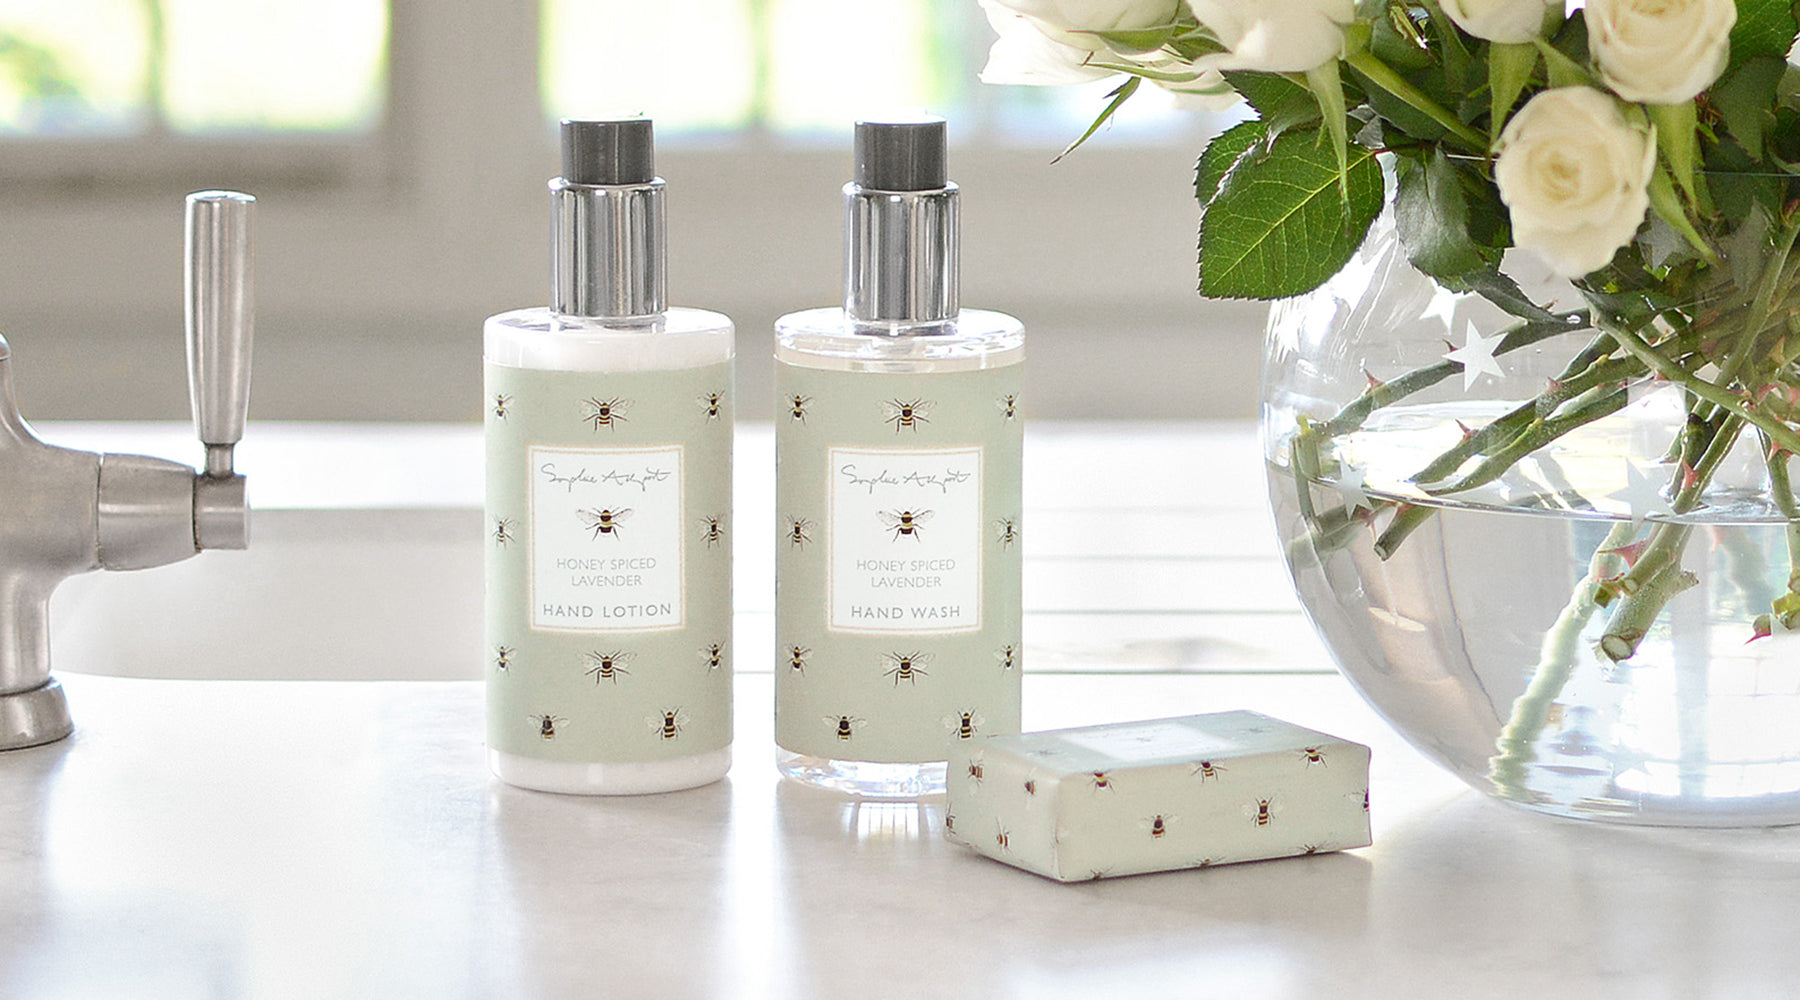 Honey Spiced Lavender Home Scent by Sophie Allport